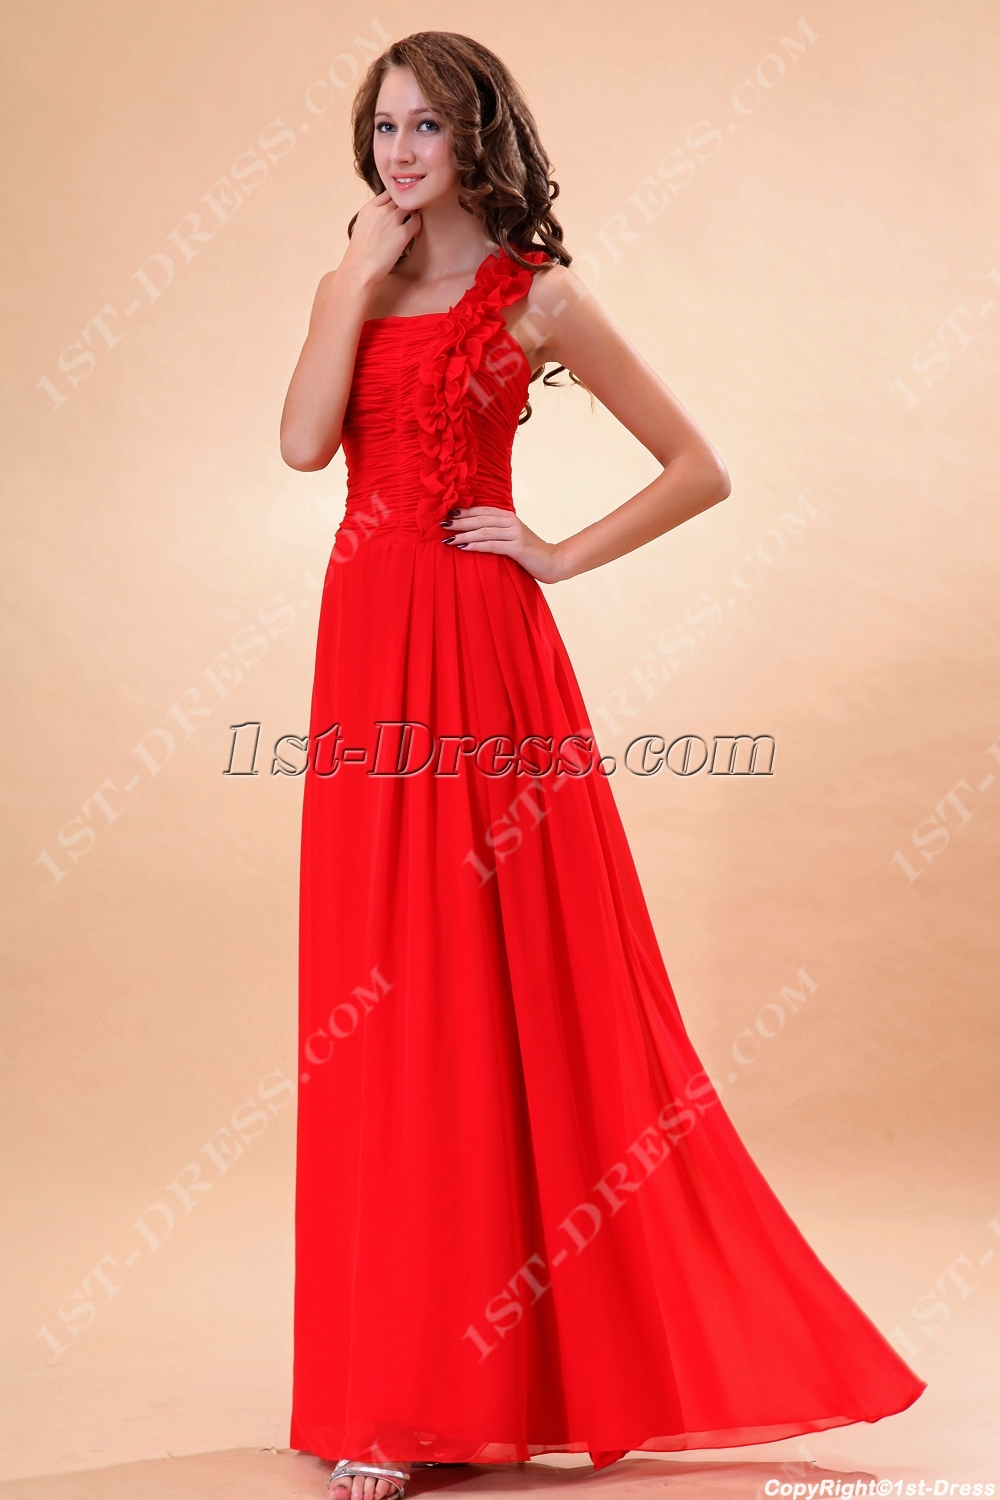 images/201311/big/Pretty-Ruched-Chiffon-2011-Prom-Dresses-with-One-Shoulder-3457-b-1-1383996453.jpg